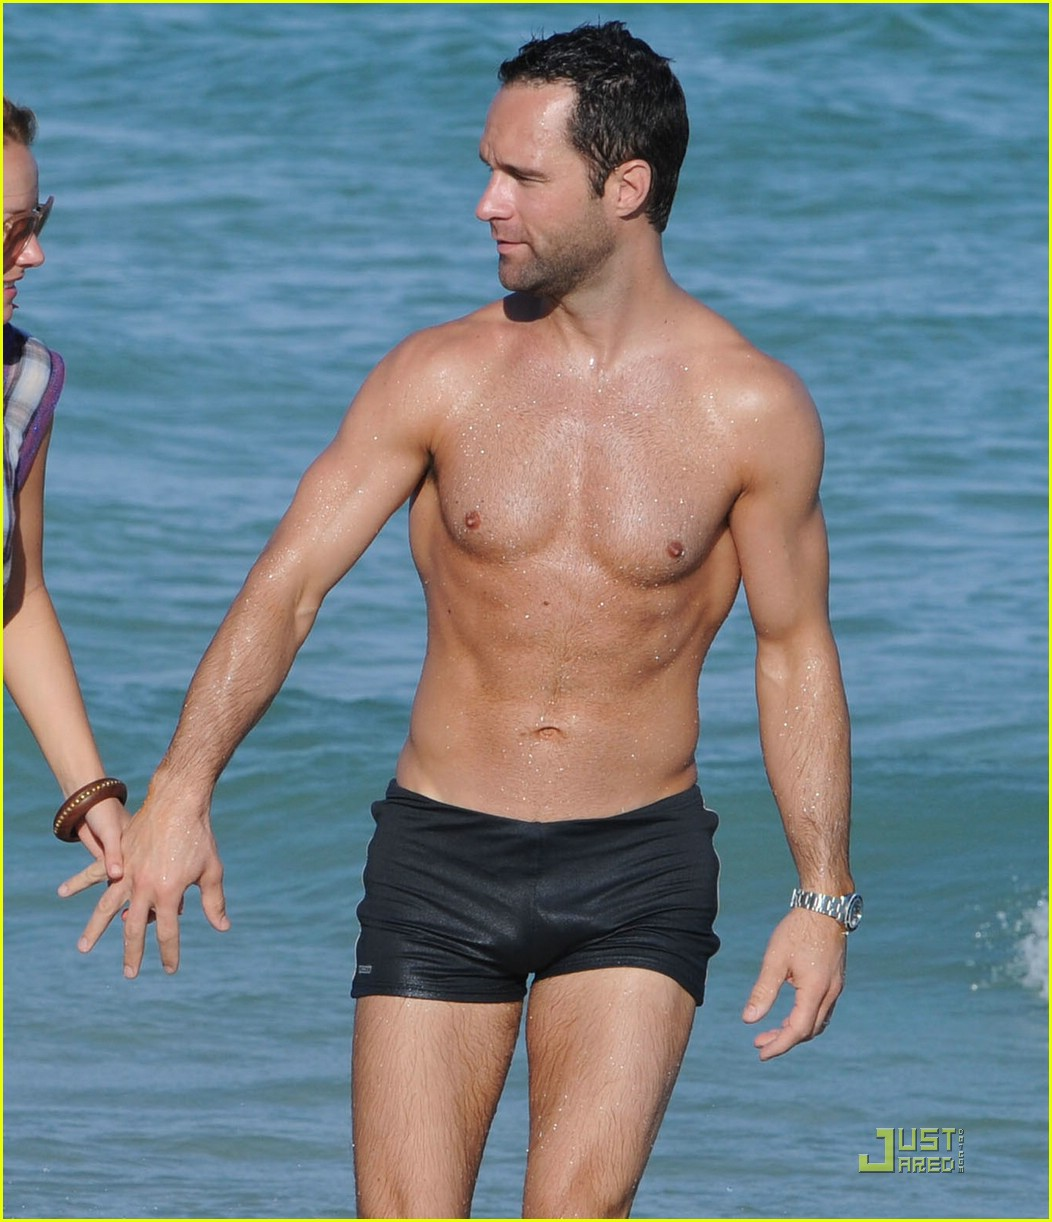 Full Sized Photo of chris diamantopoulos shirtless sexy 04 | Photo 1549381 | Just Jared